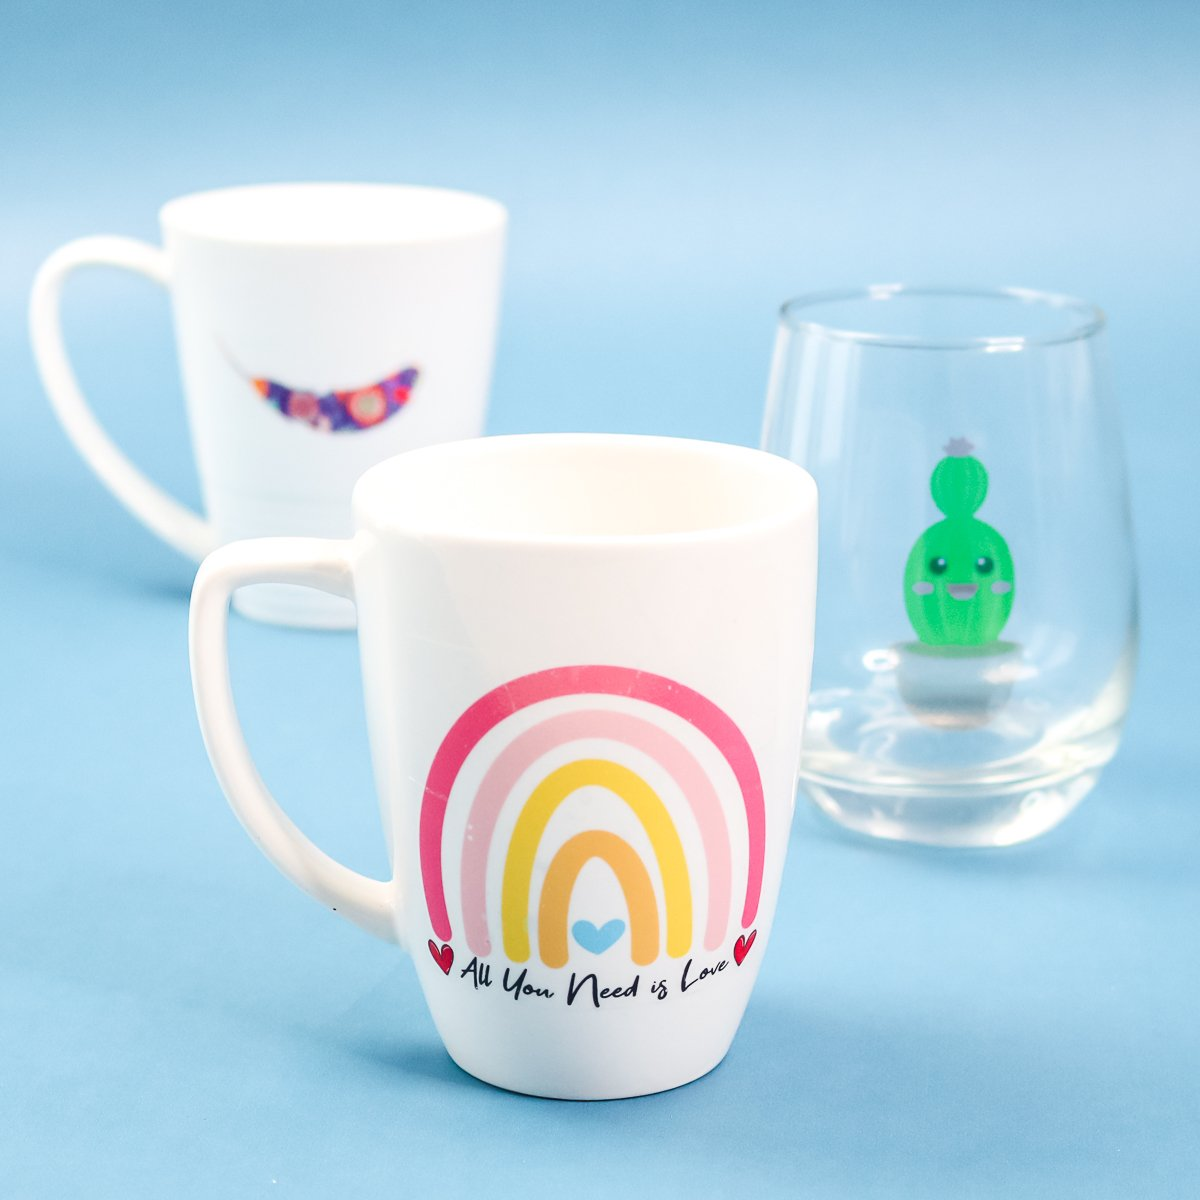 printed images on mugs